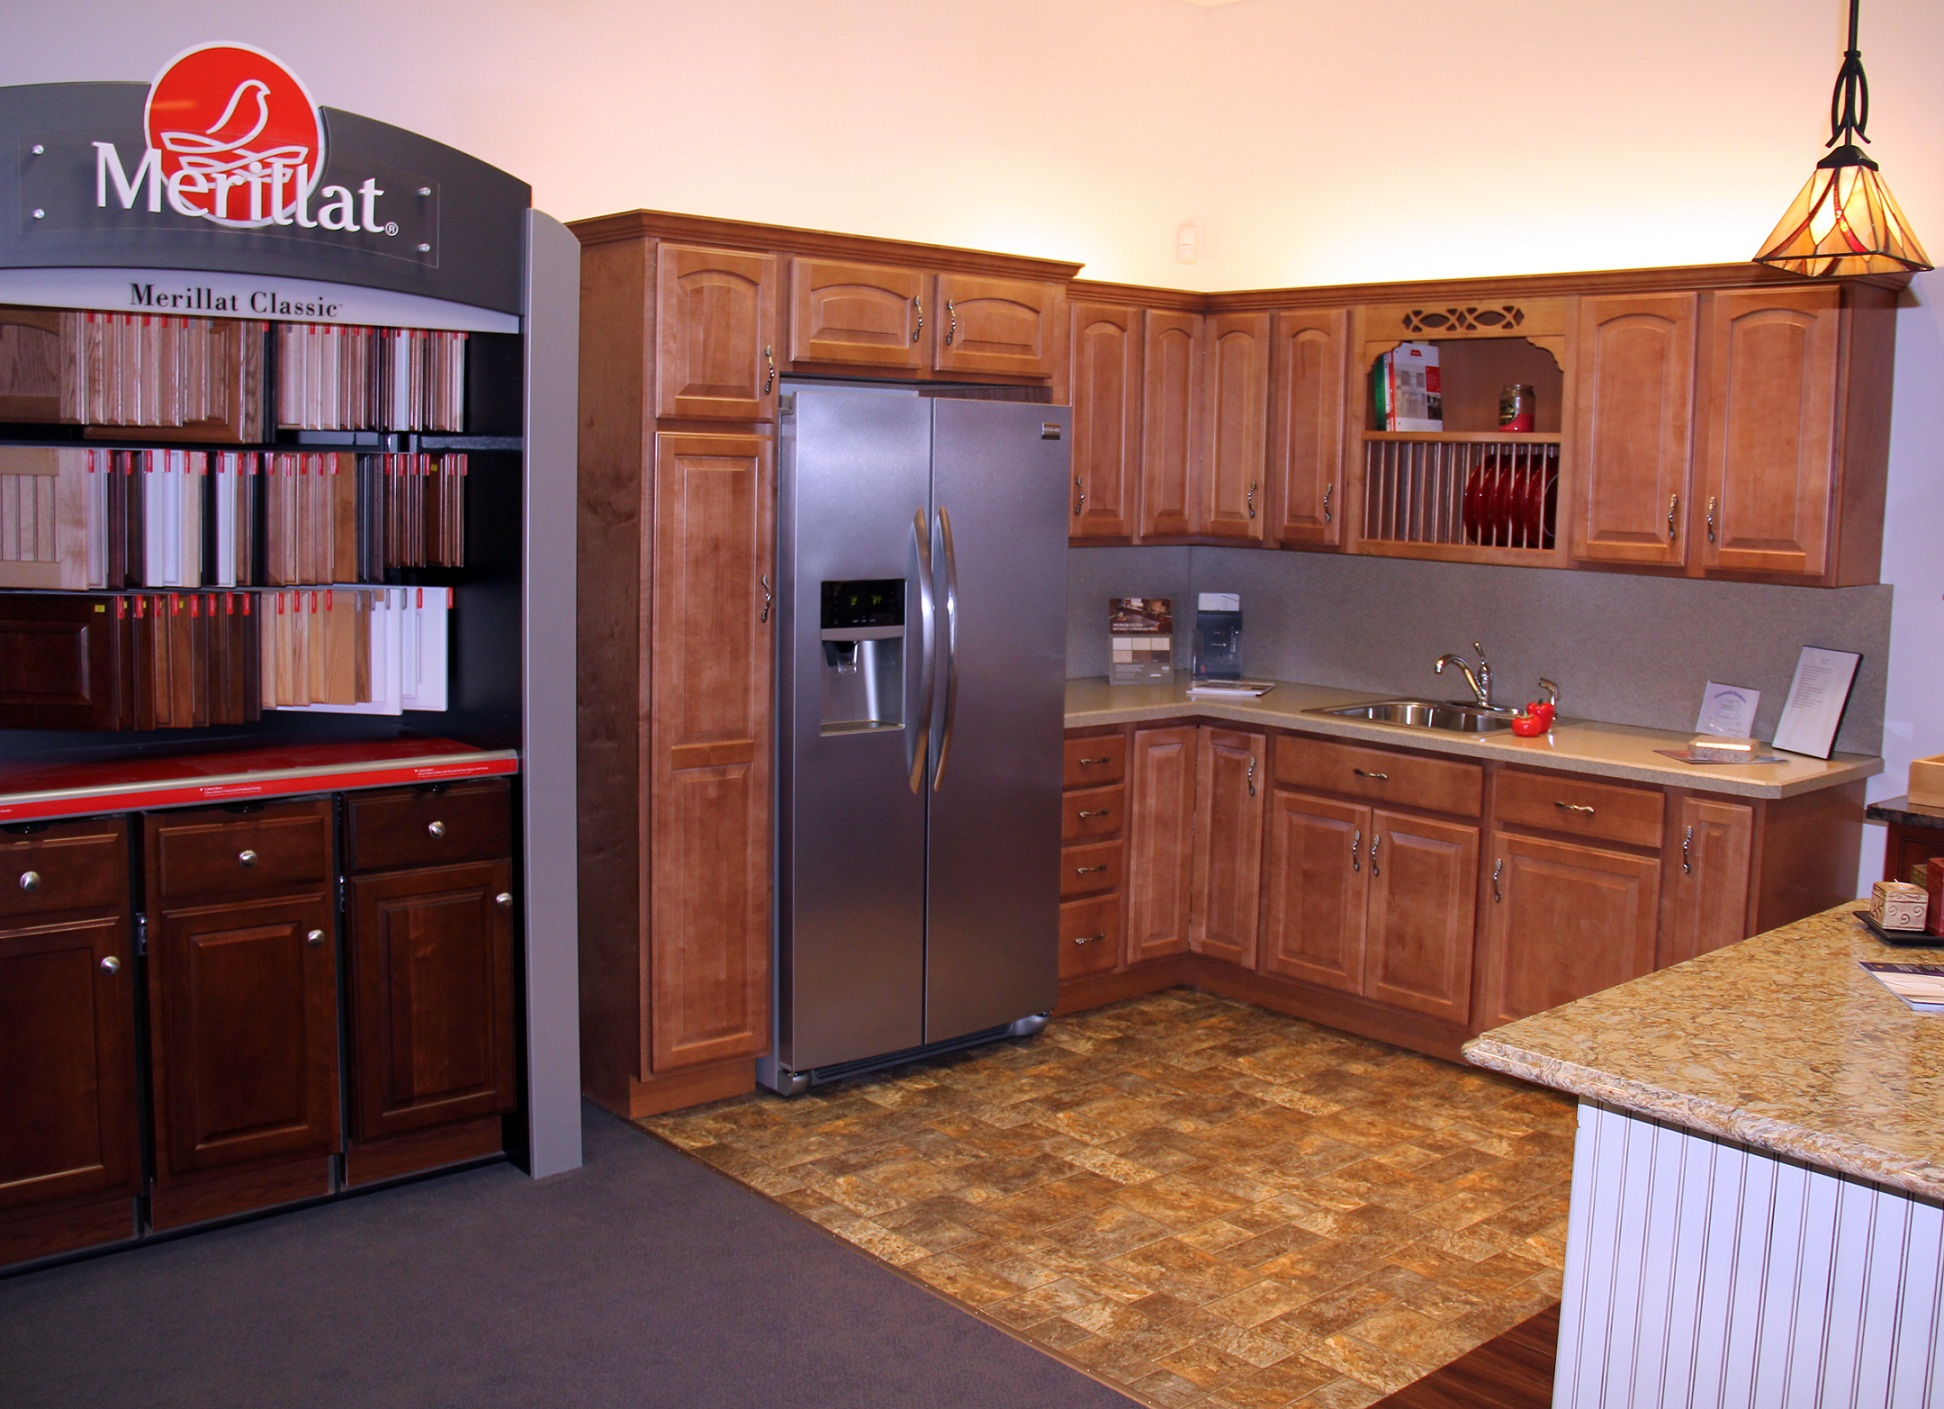 1 week kitchens to have first home show display at nepa home garden show - Show picture of kitchen ...